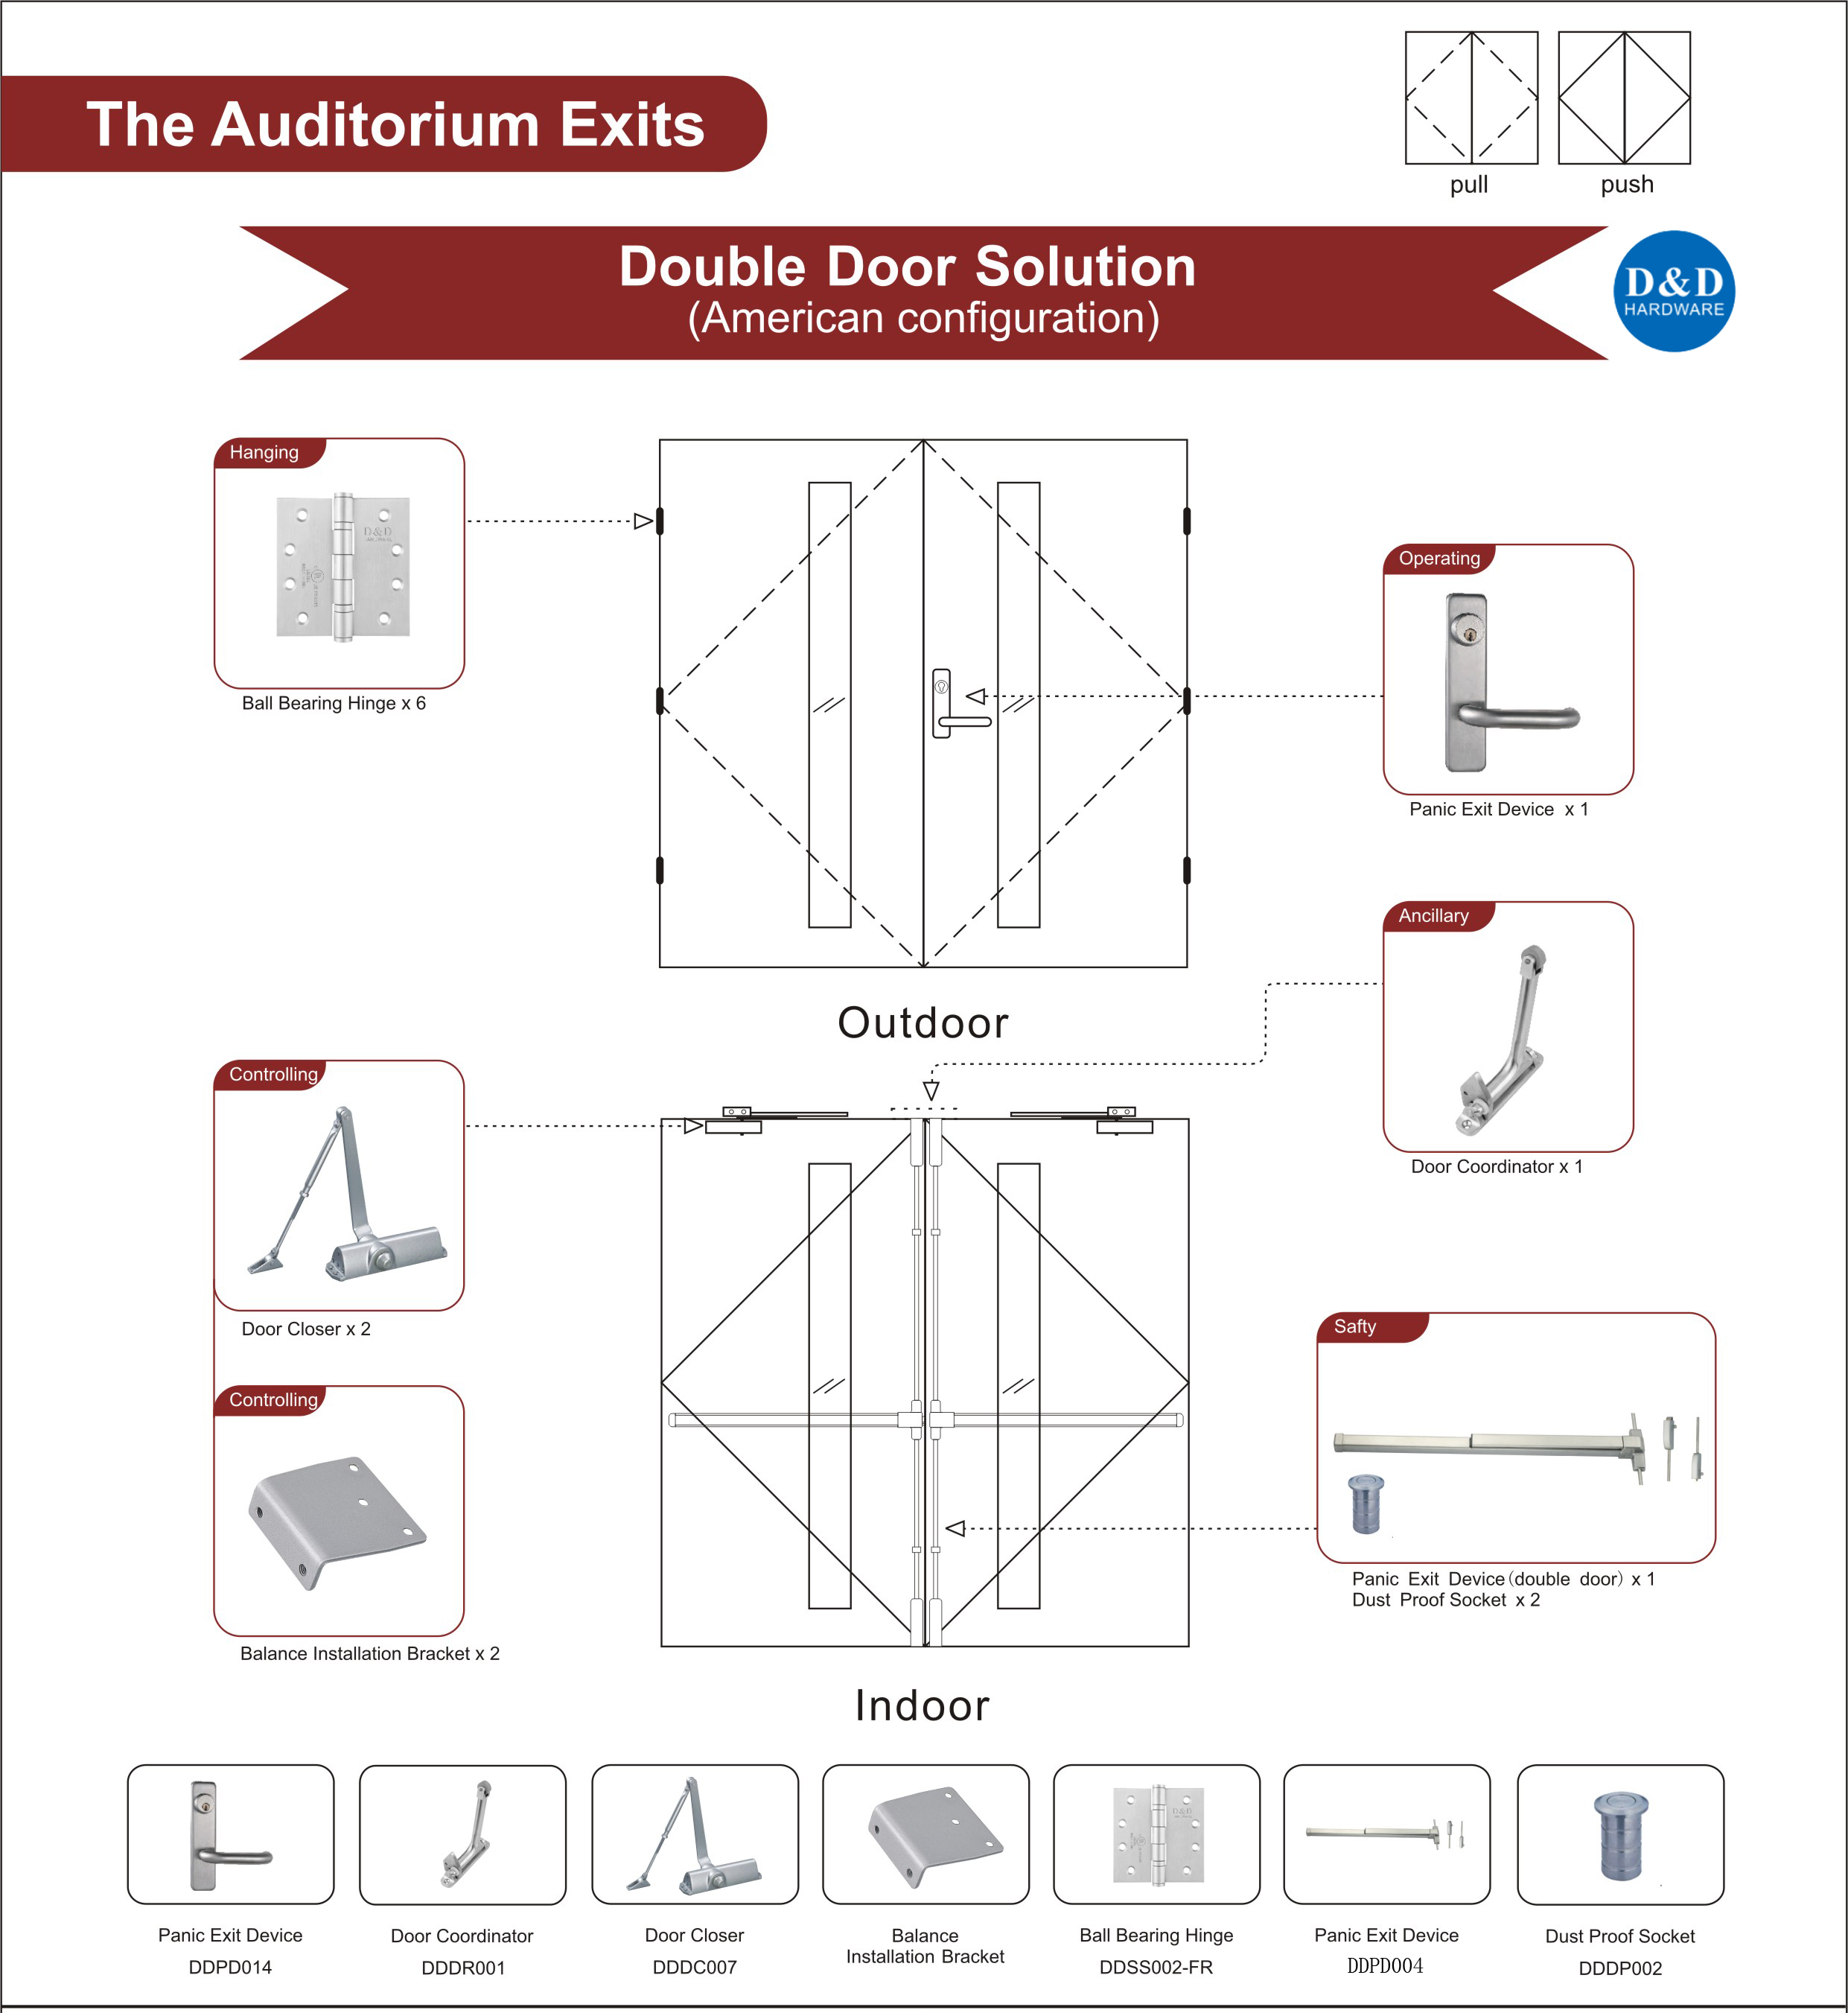 Fire Rated Steel Door Hardware for Auditorium Exits Double Door